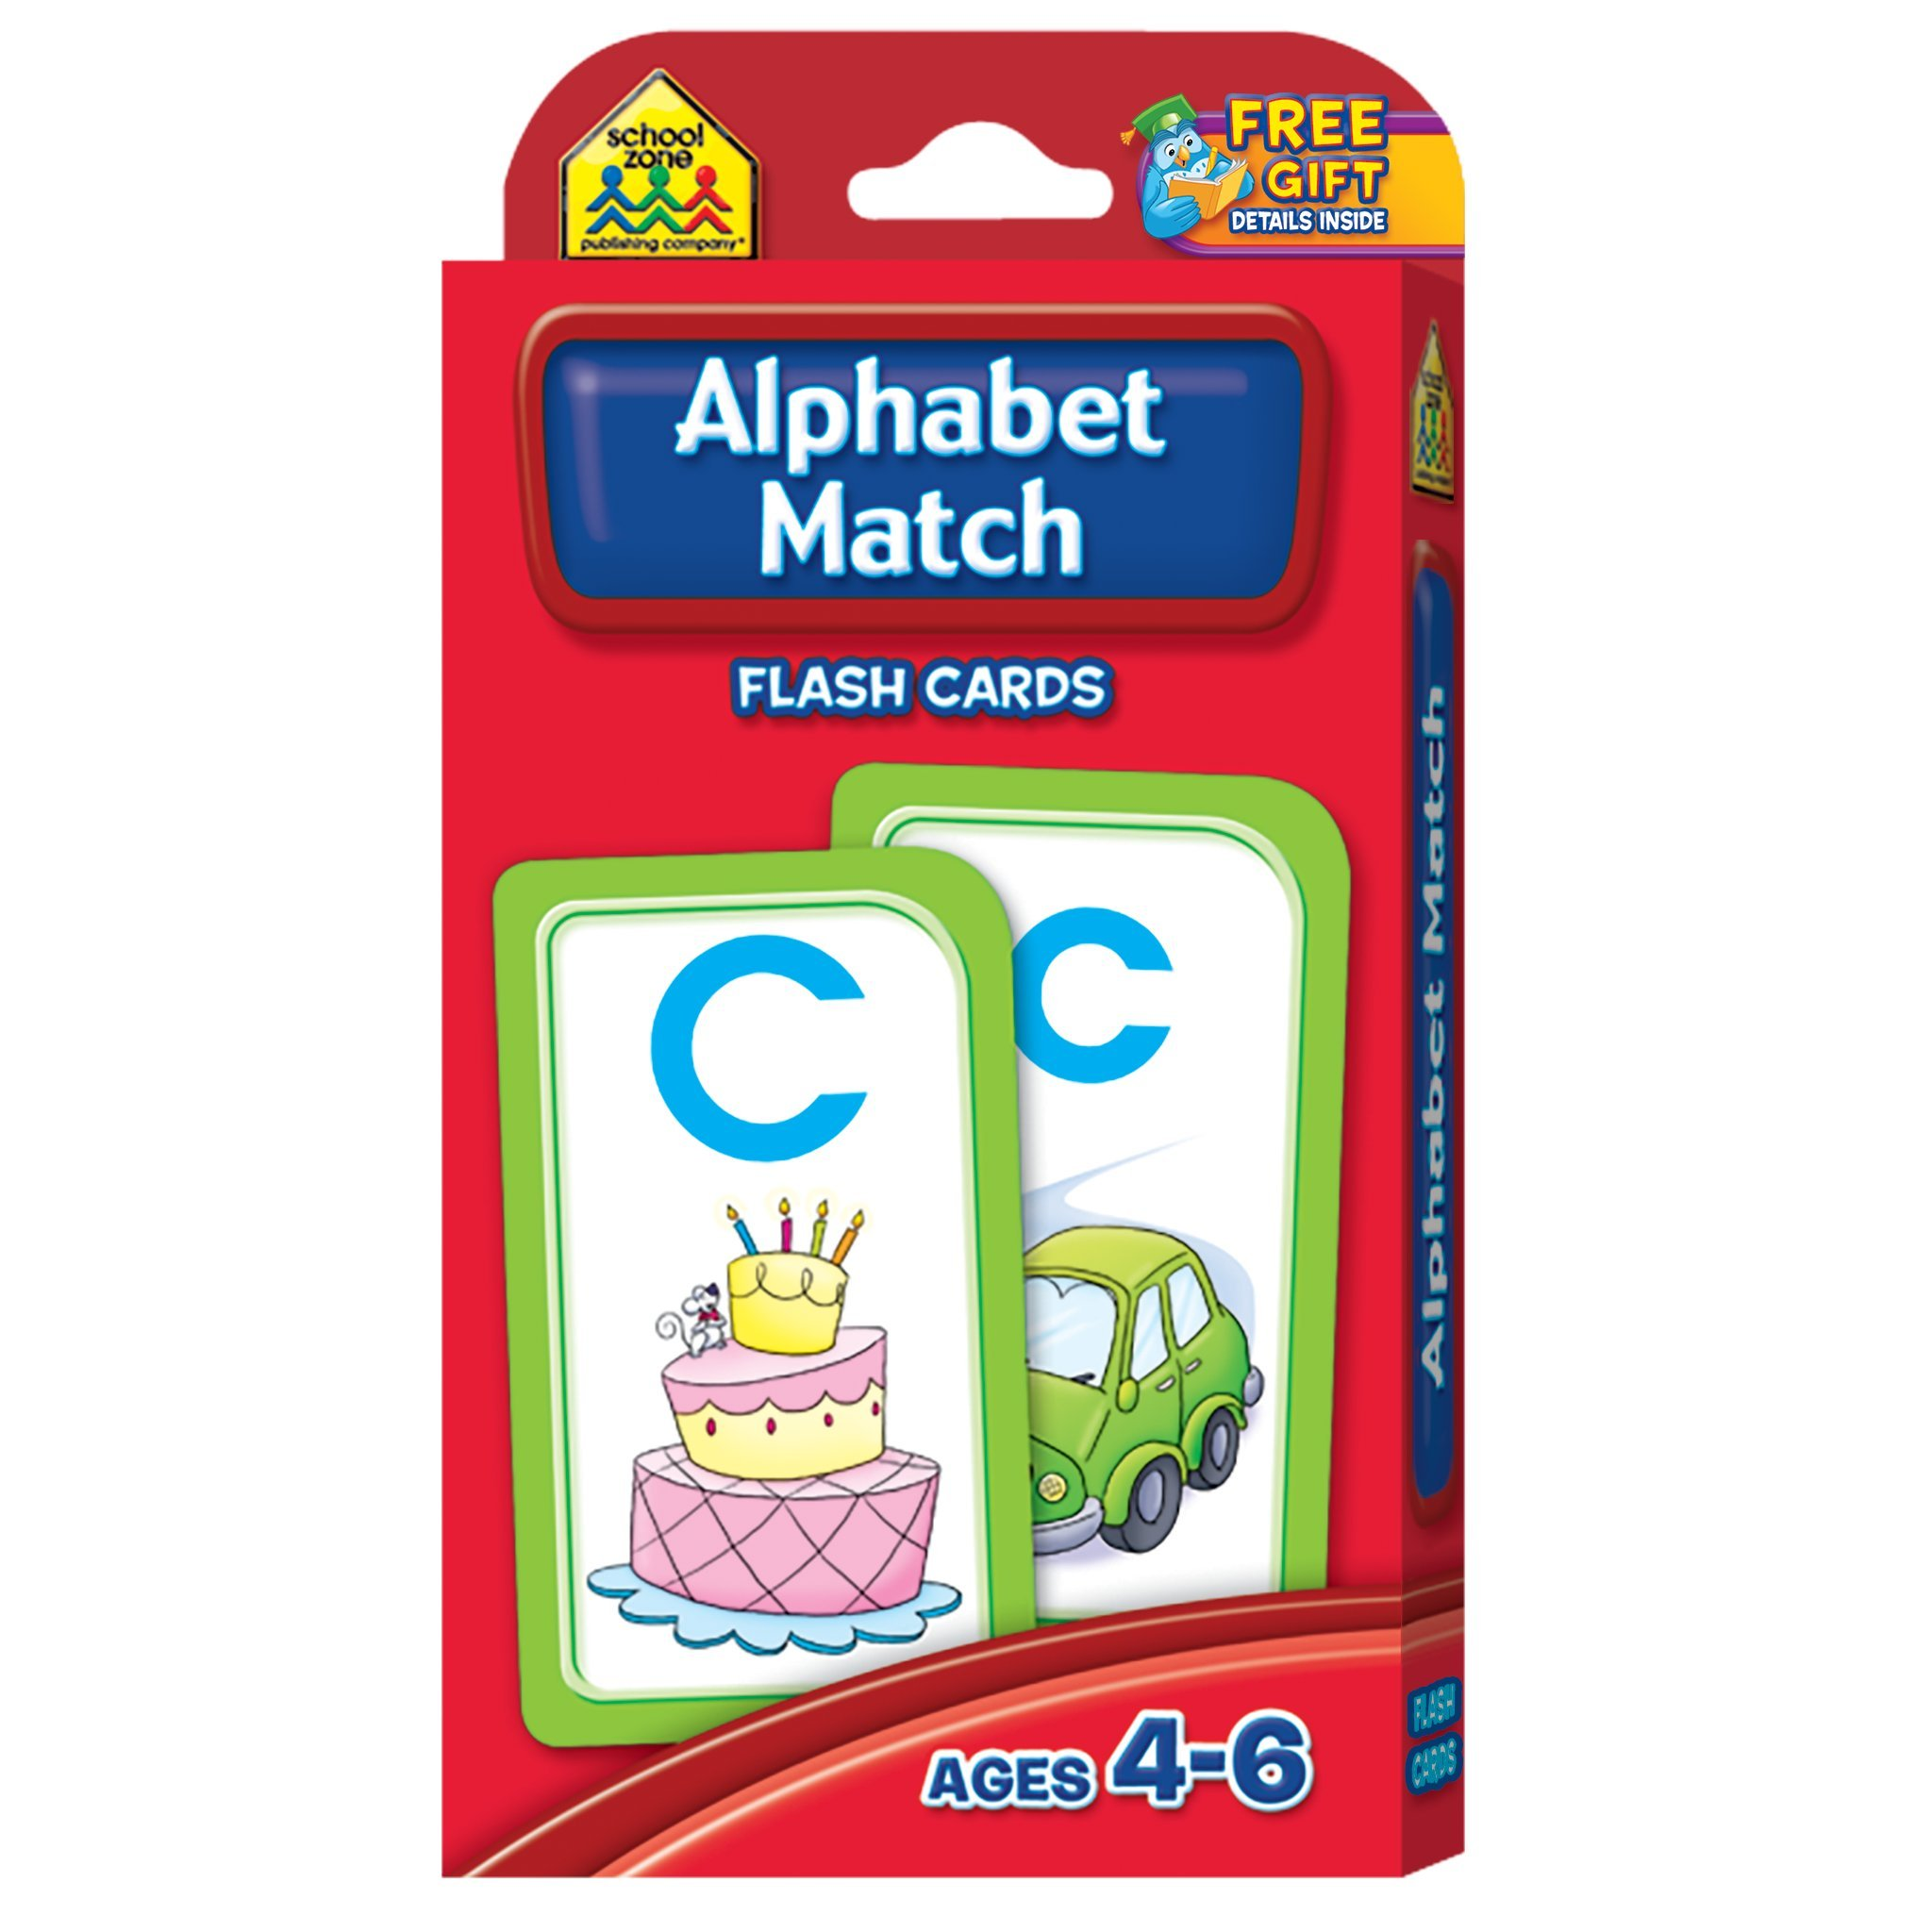 Alphabet Match Flash Cards ABC Learning Game For Kids Toys Set